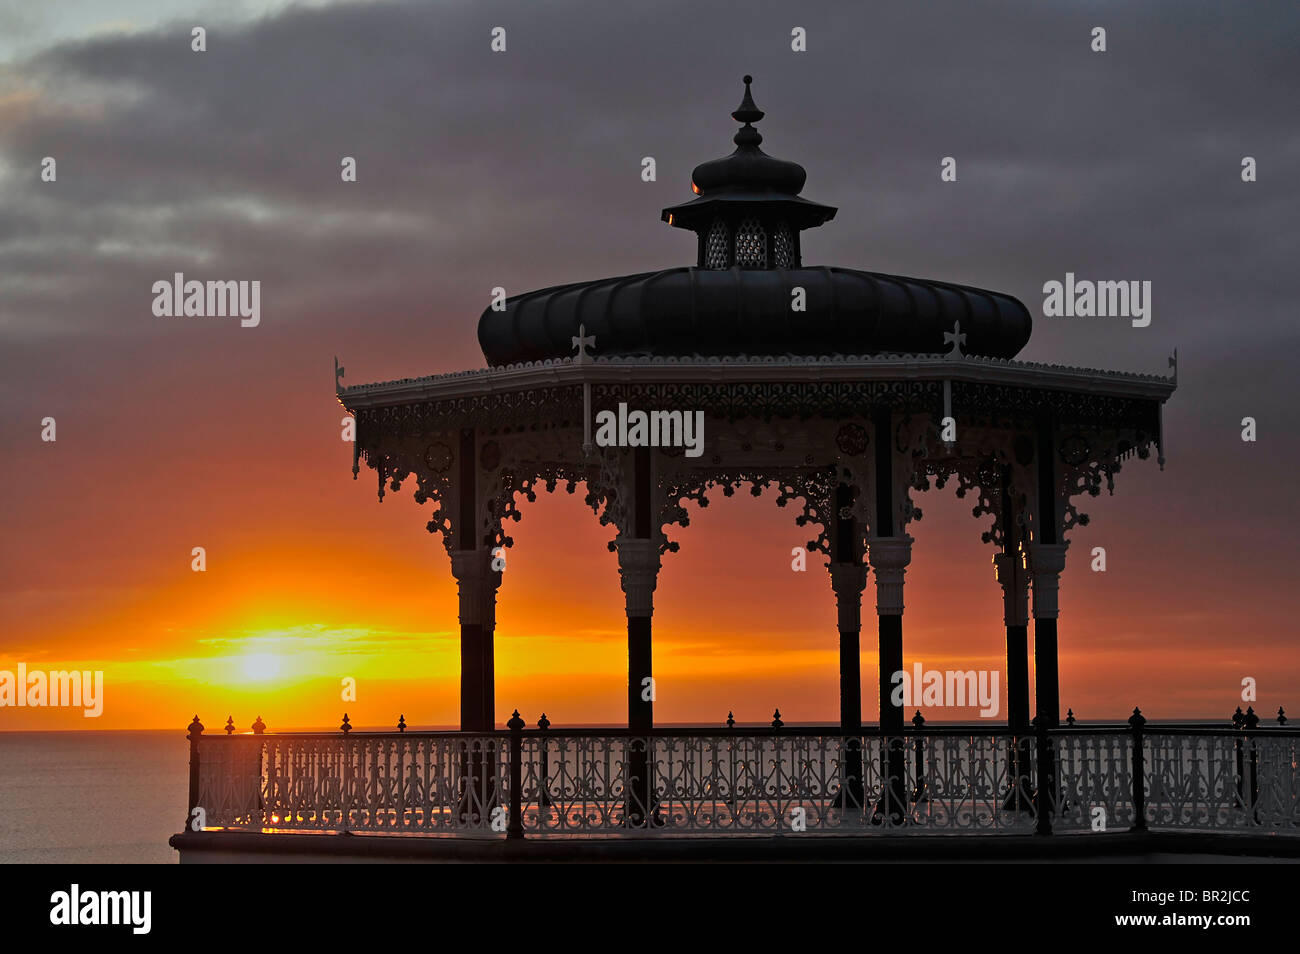 Brighton Bandstand at sunset. Brighton, East Sussex, England - Stock Image